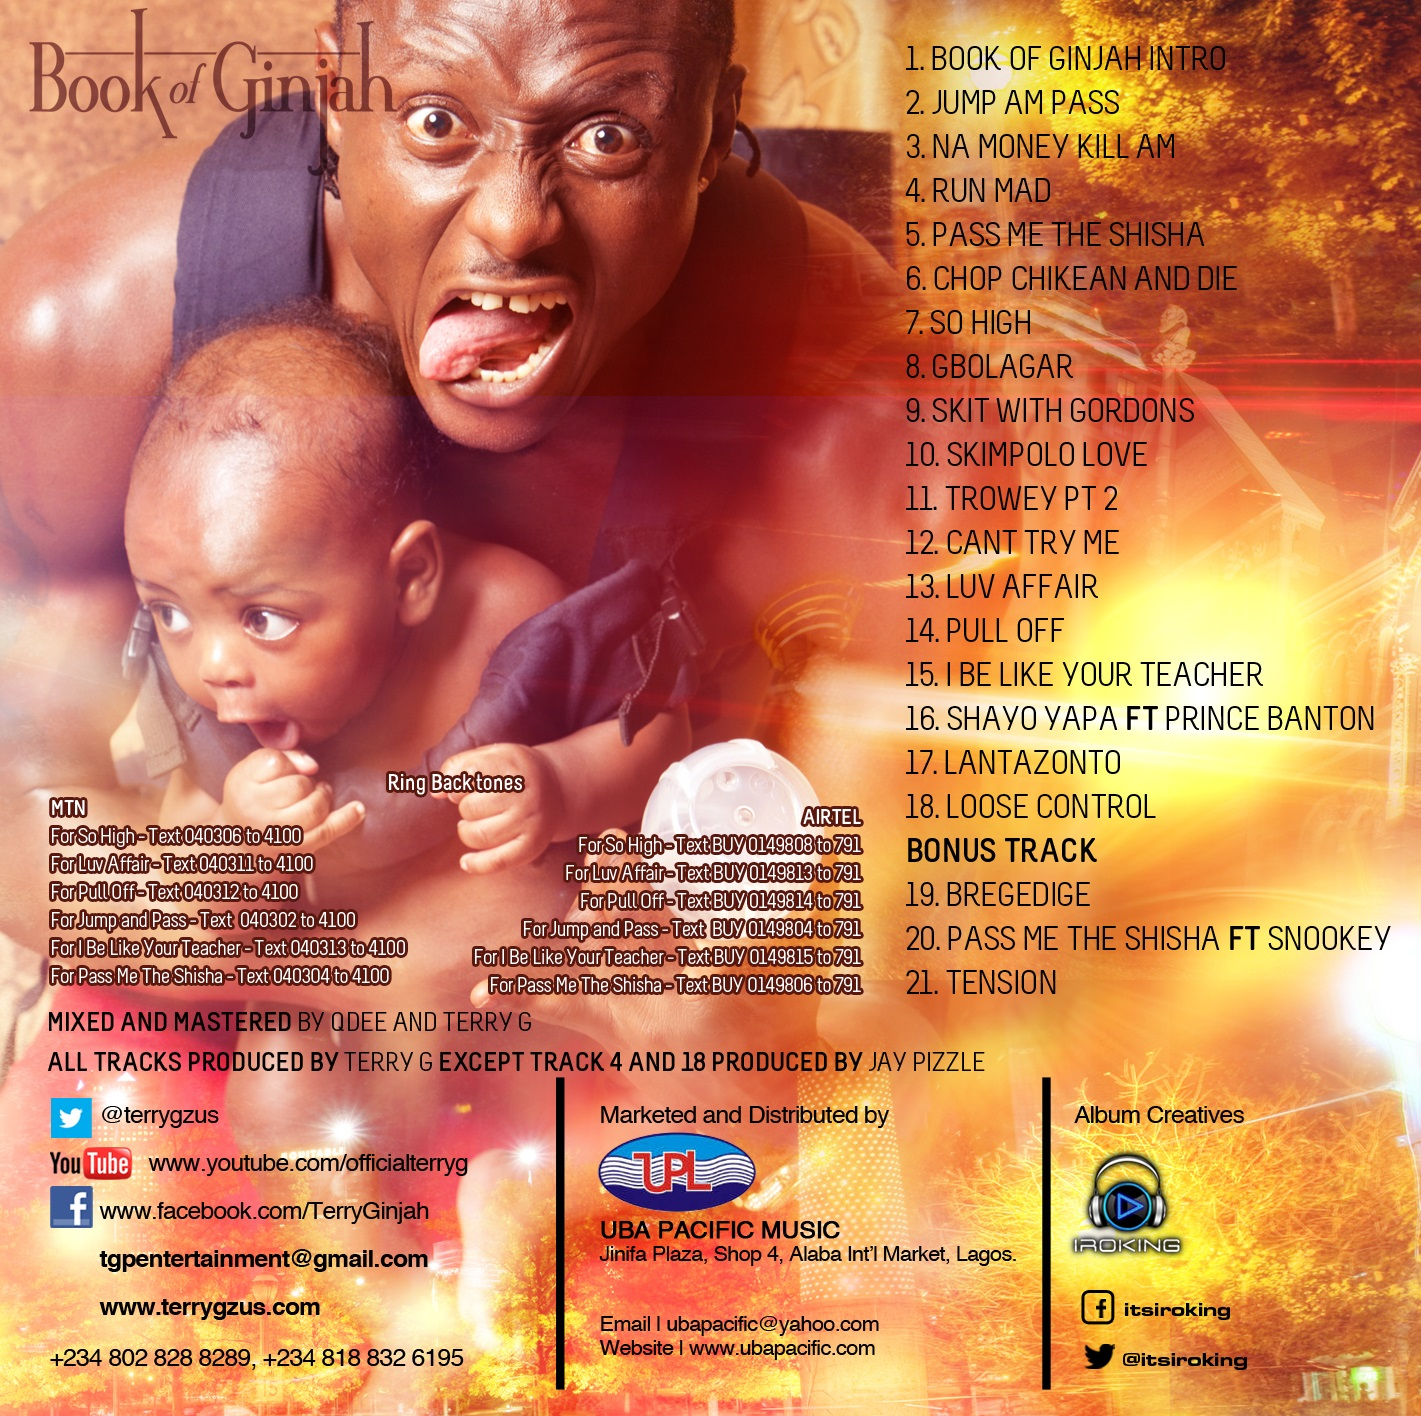 Terry-G-Book-of-Ginjah-Track-listings